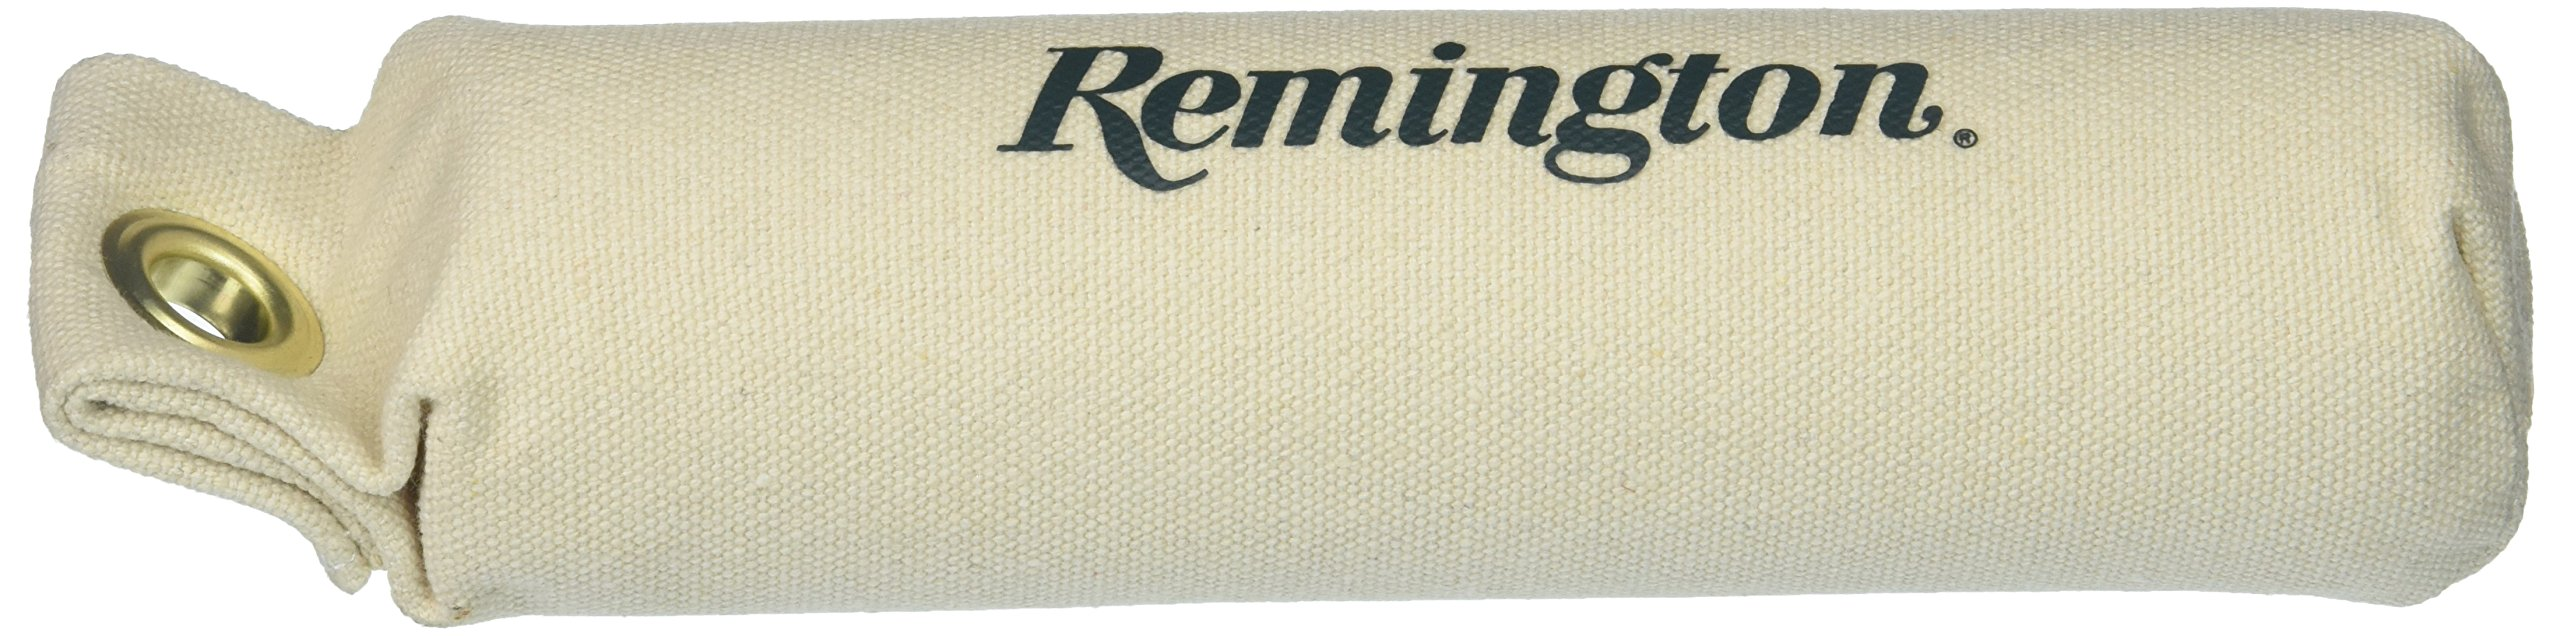 Coastal Pet Products DCPR1831NAT Canvas Remington Dog Training Dummy, 9 by 2-Inch, Natural